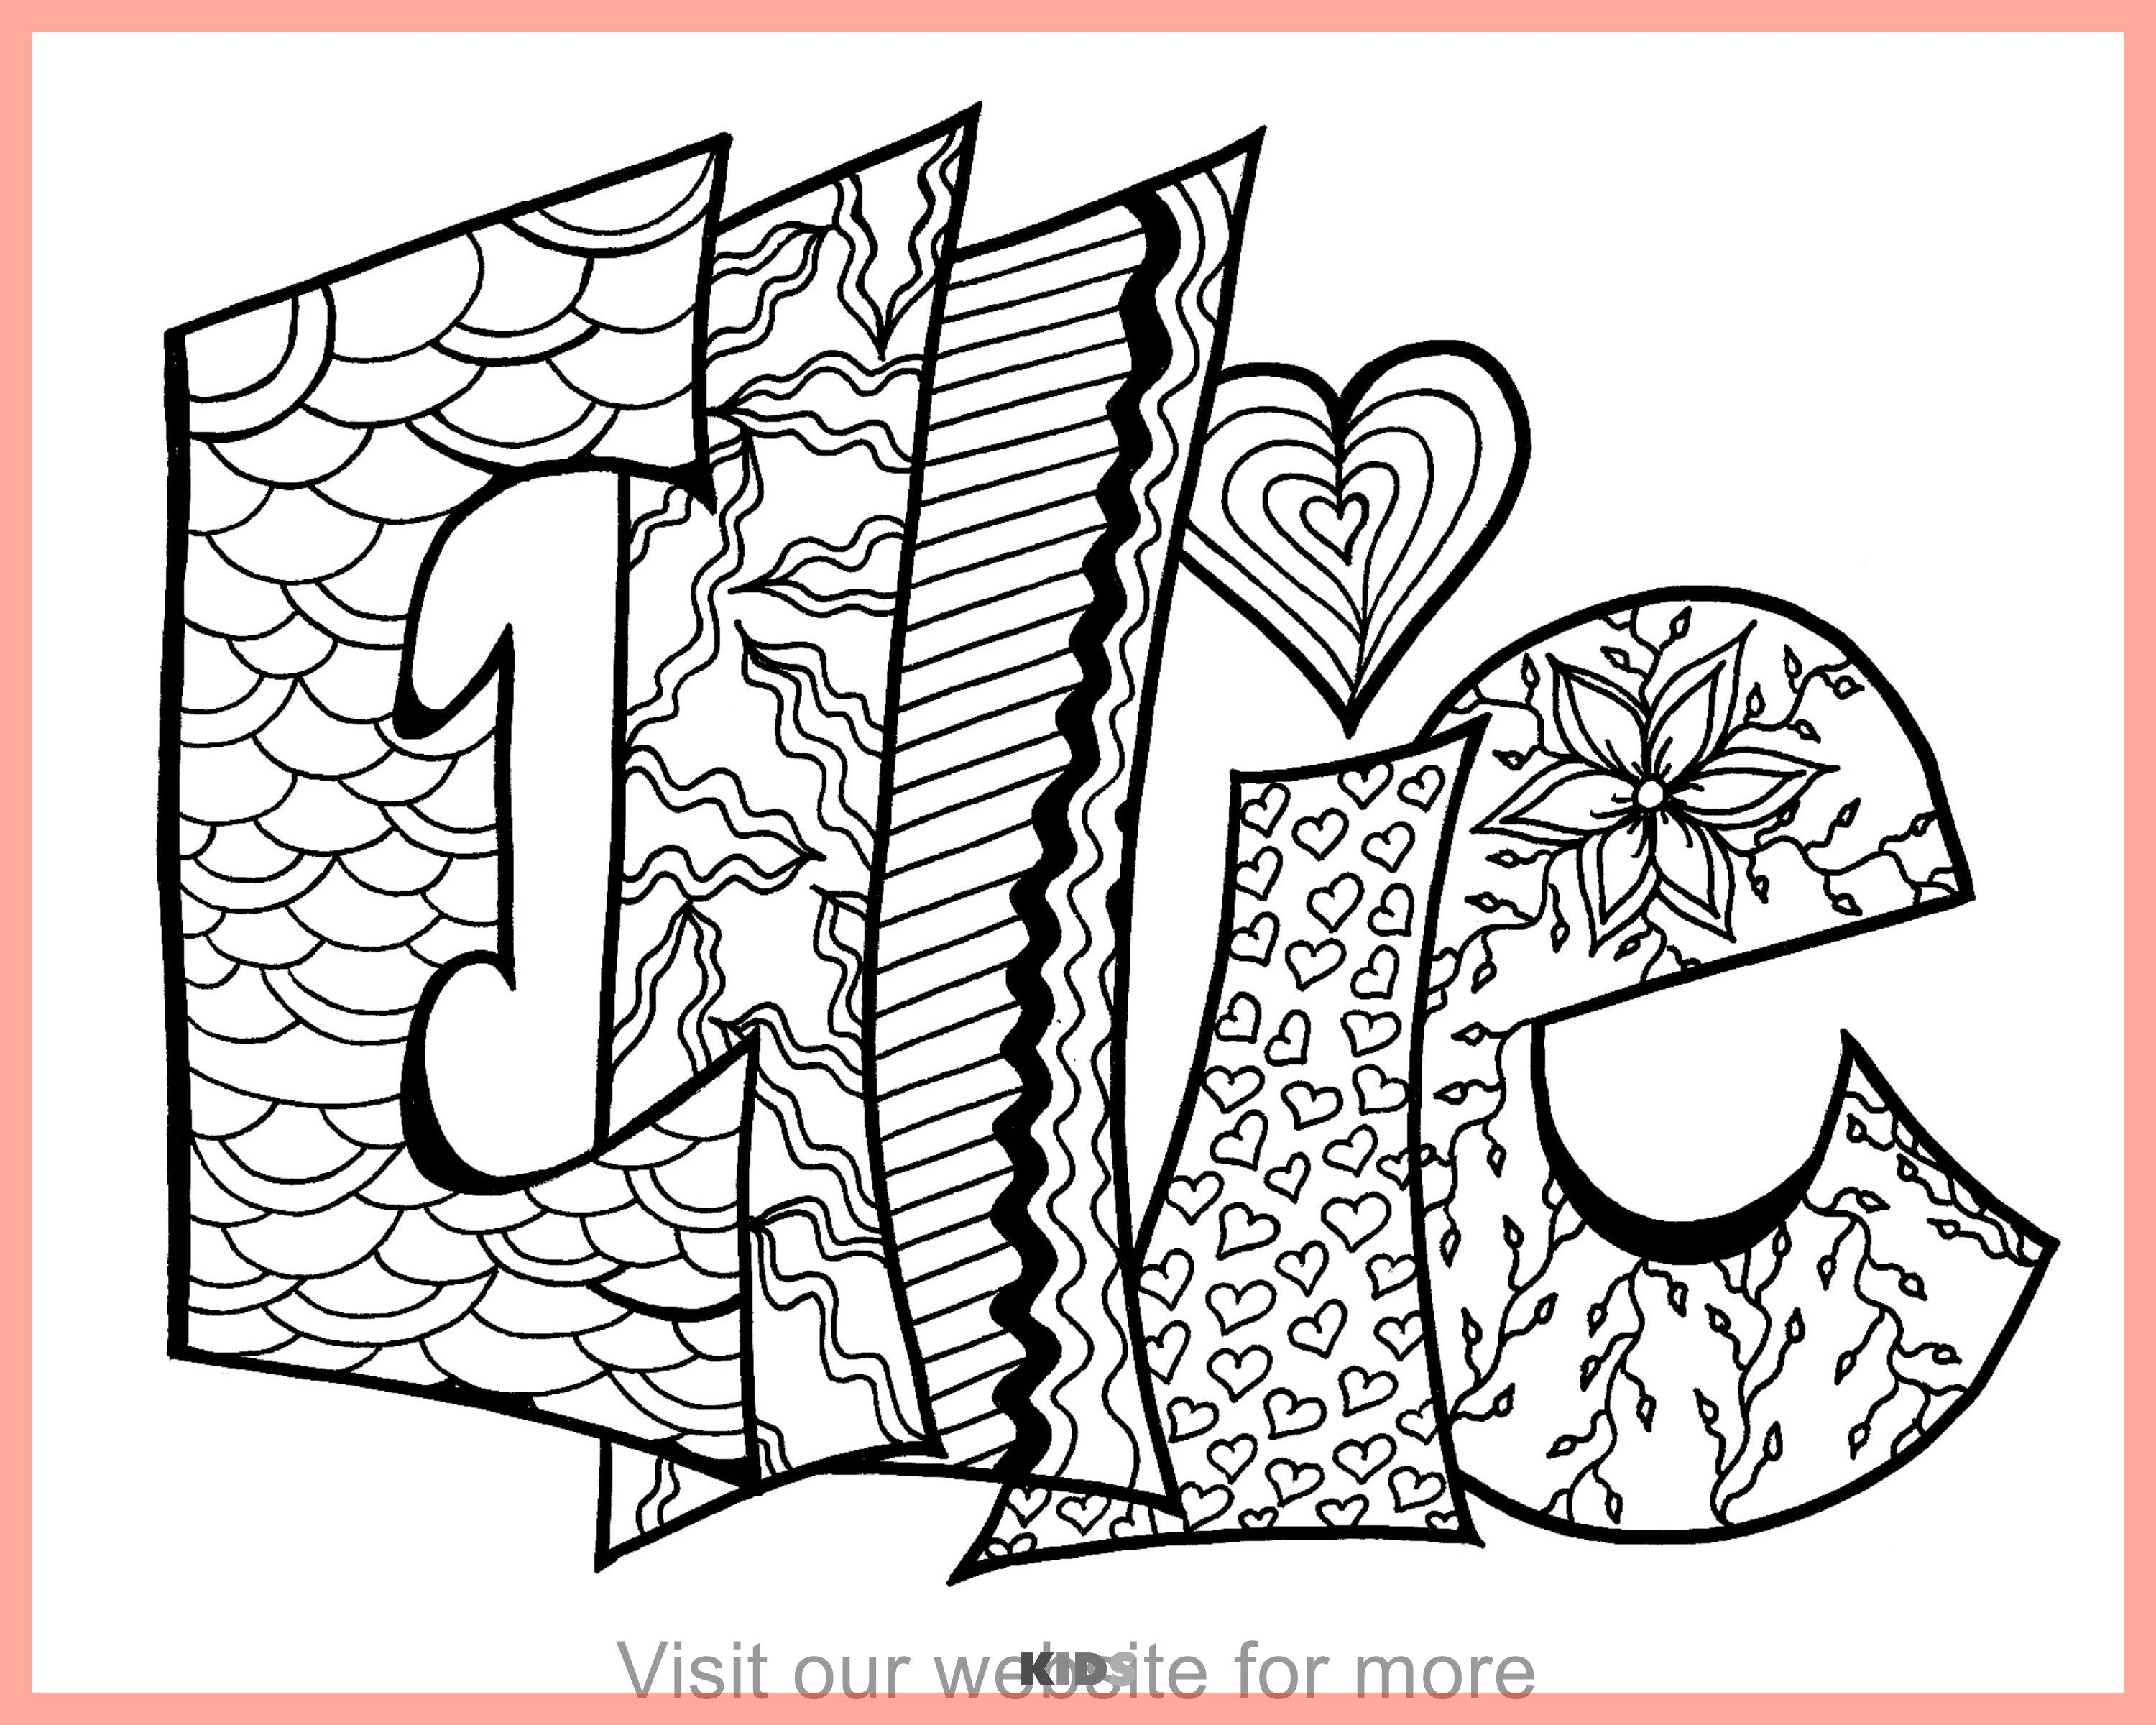 Paislee Free Coloring Page Stevie Doodles Name Coloring Pages Coloring Pages Free Coloring Pages